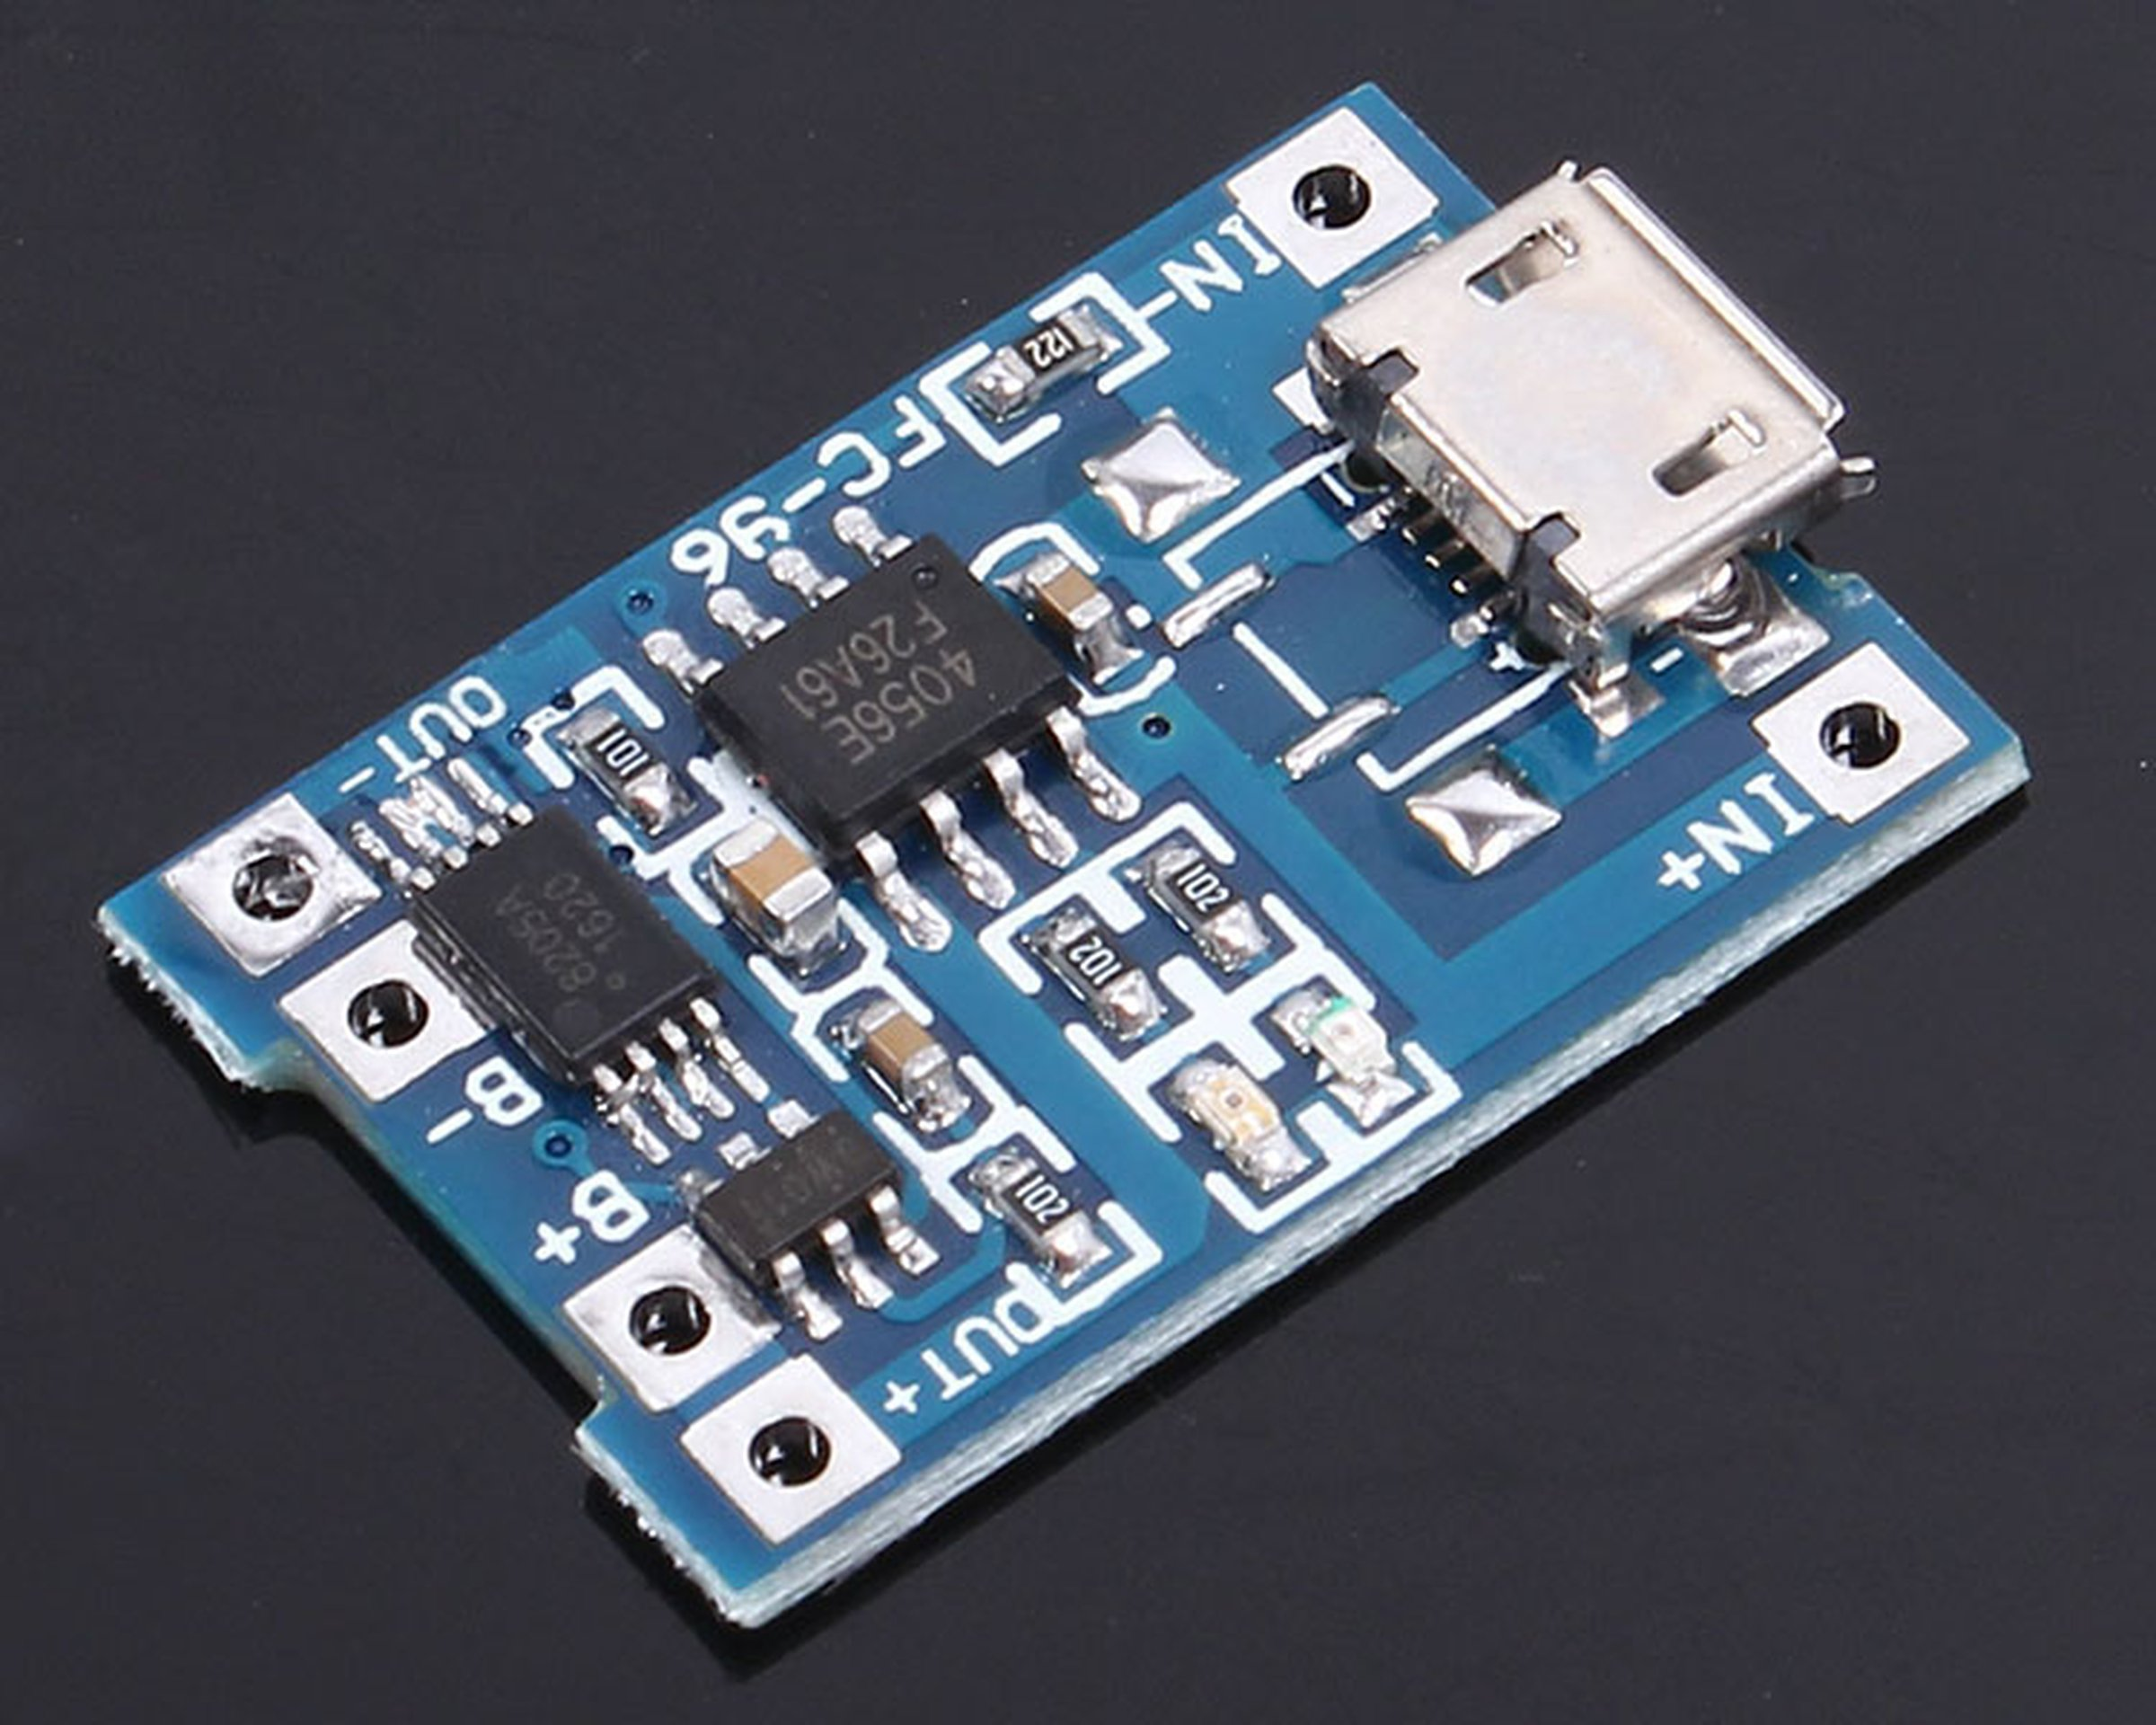 Micro Usb 5v Lithium Battery Charging Board9292 From Icstation Ion Circuit 1